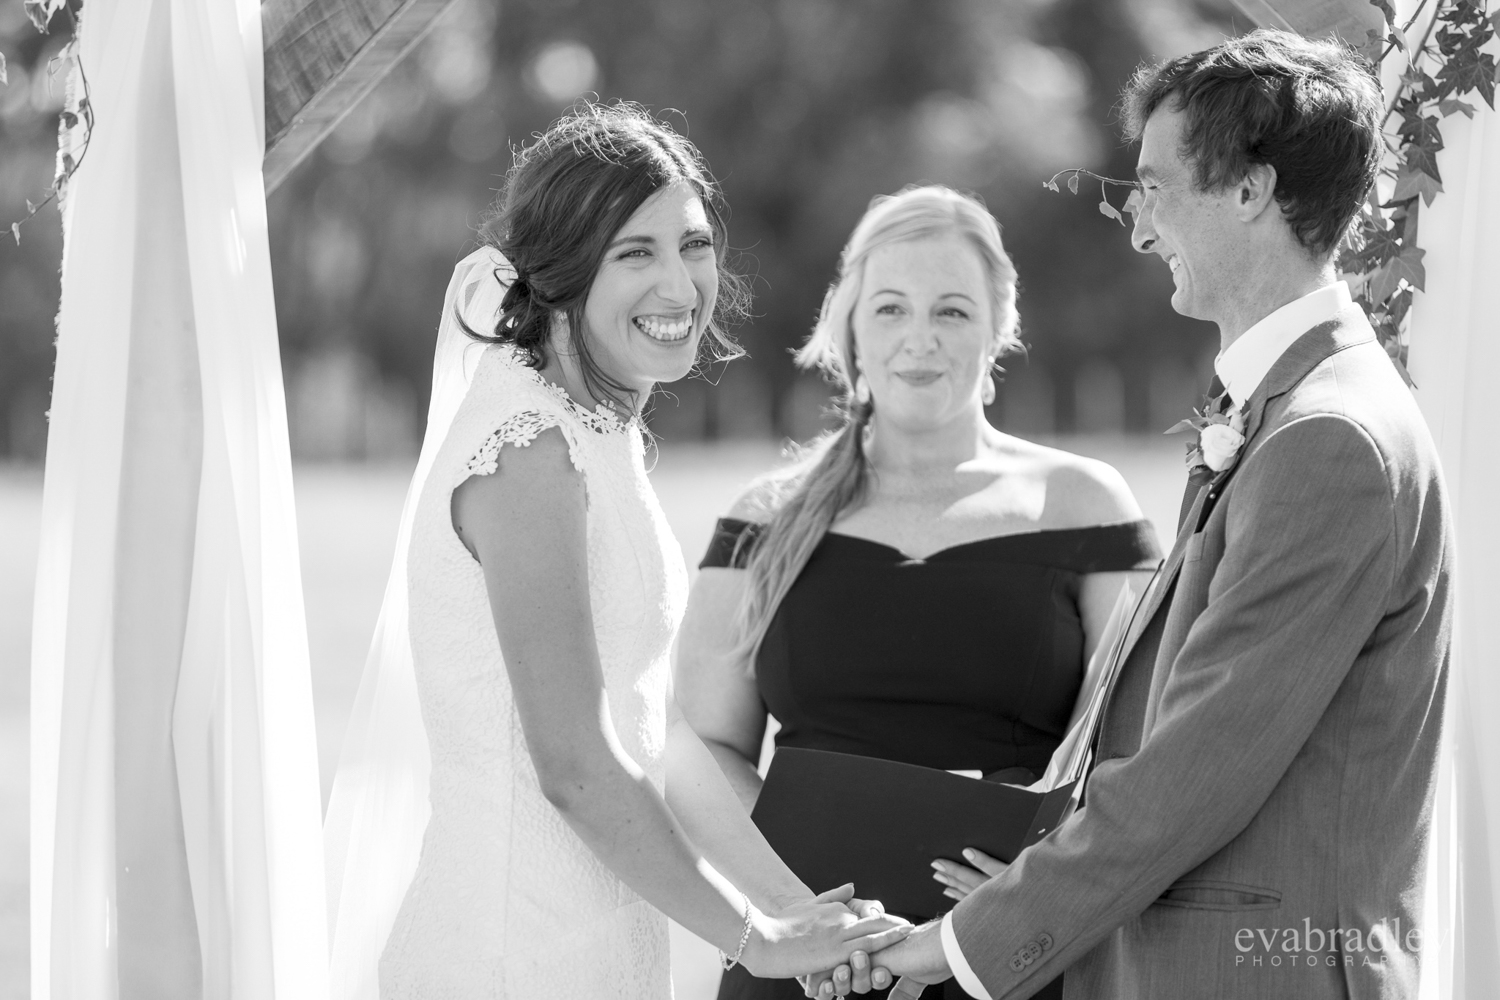 koryn-evans-wedding-celebrant-nz